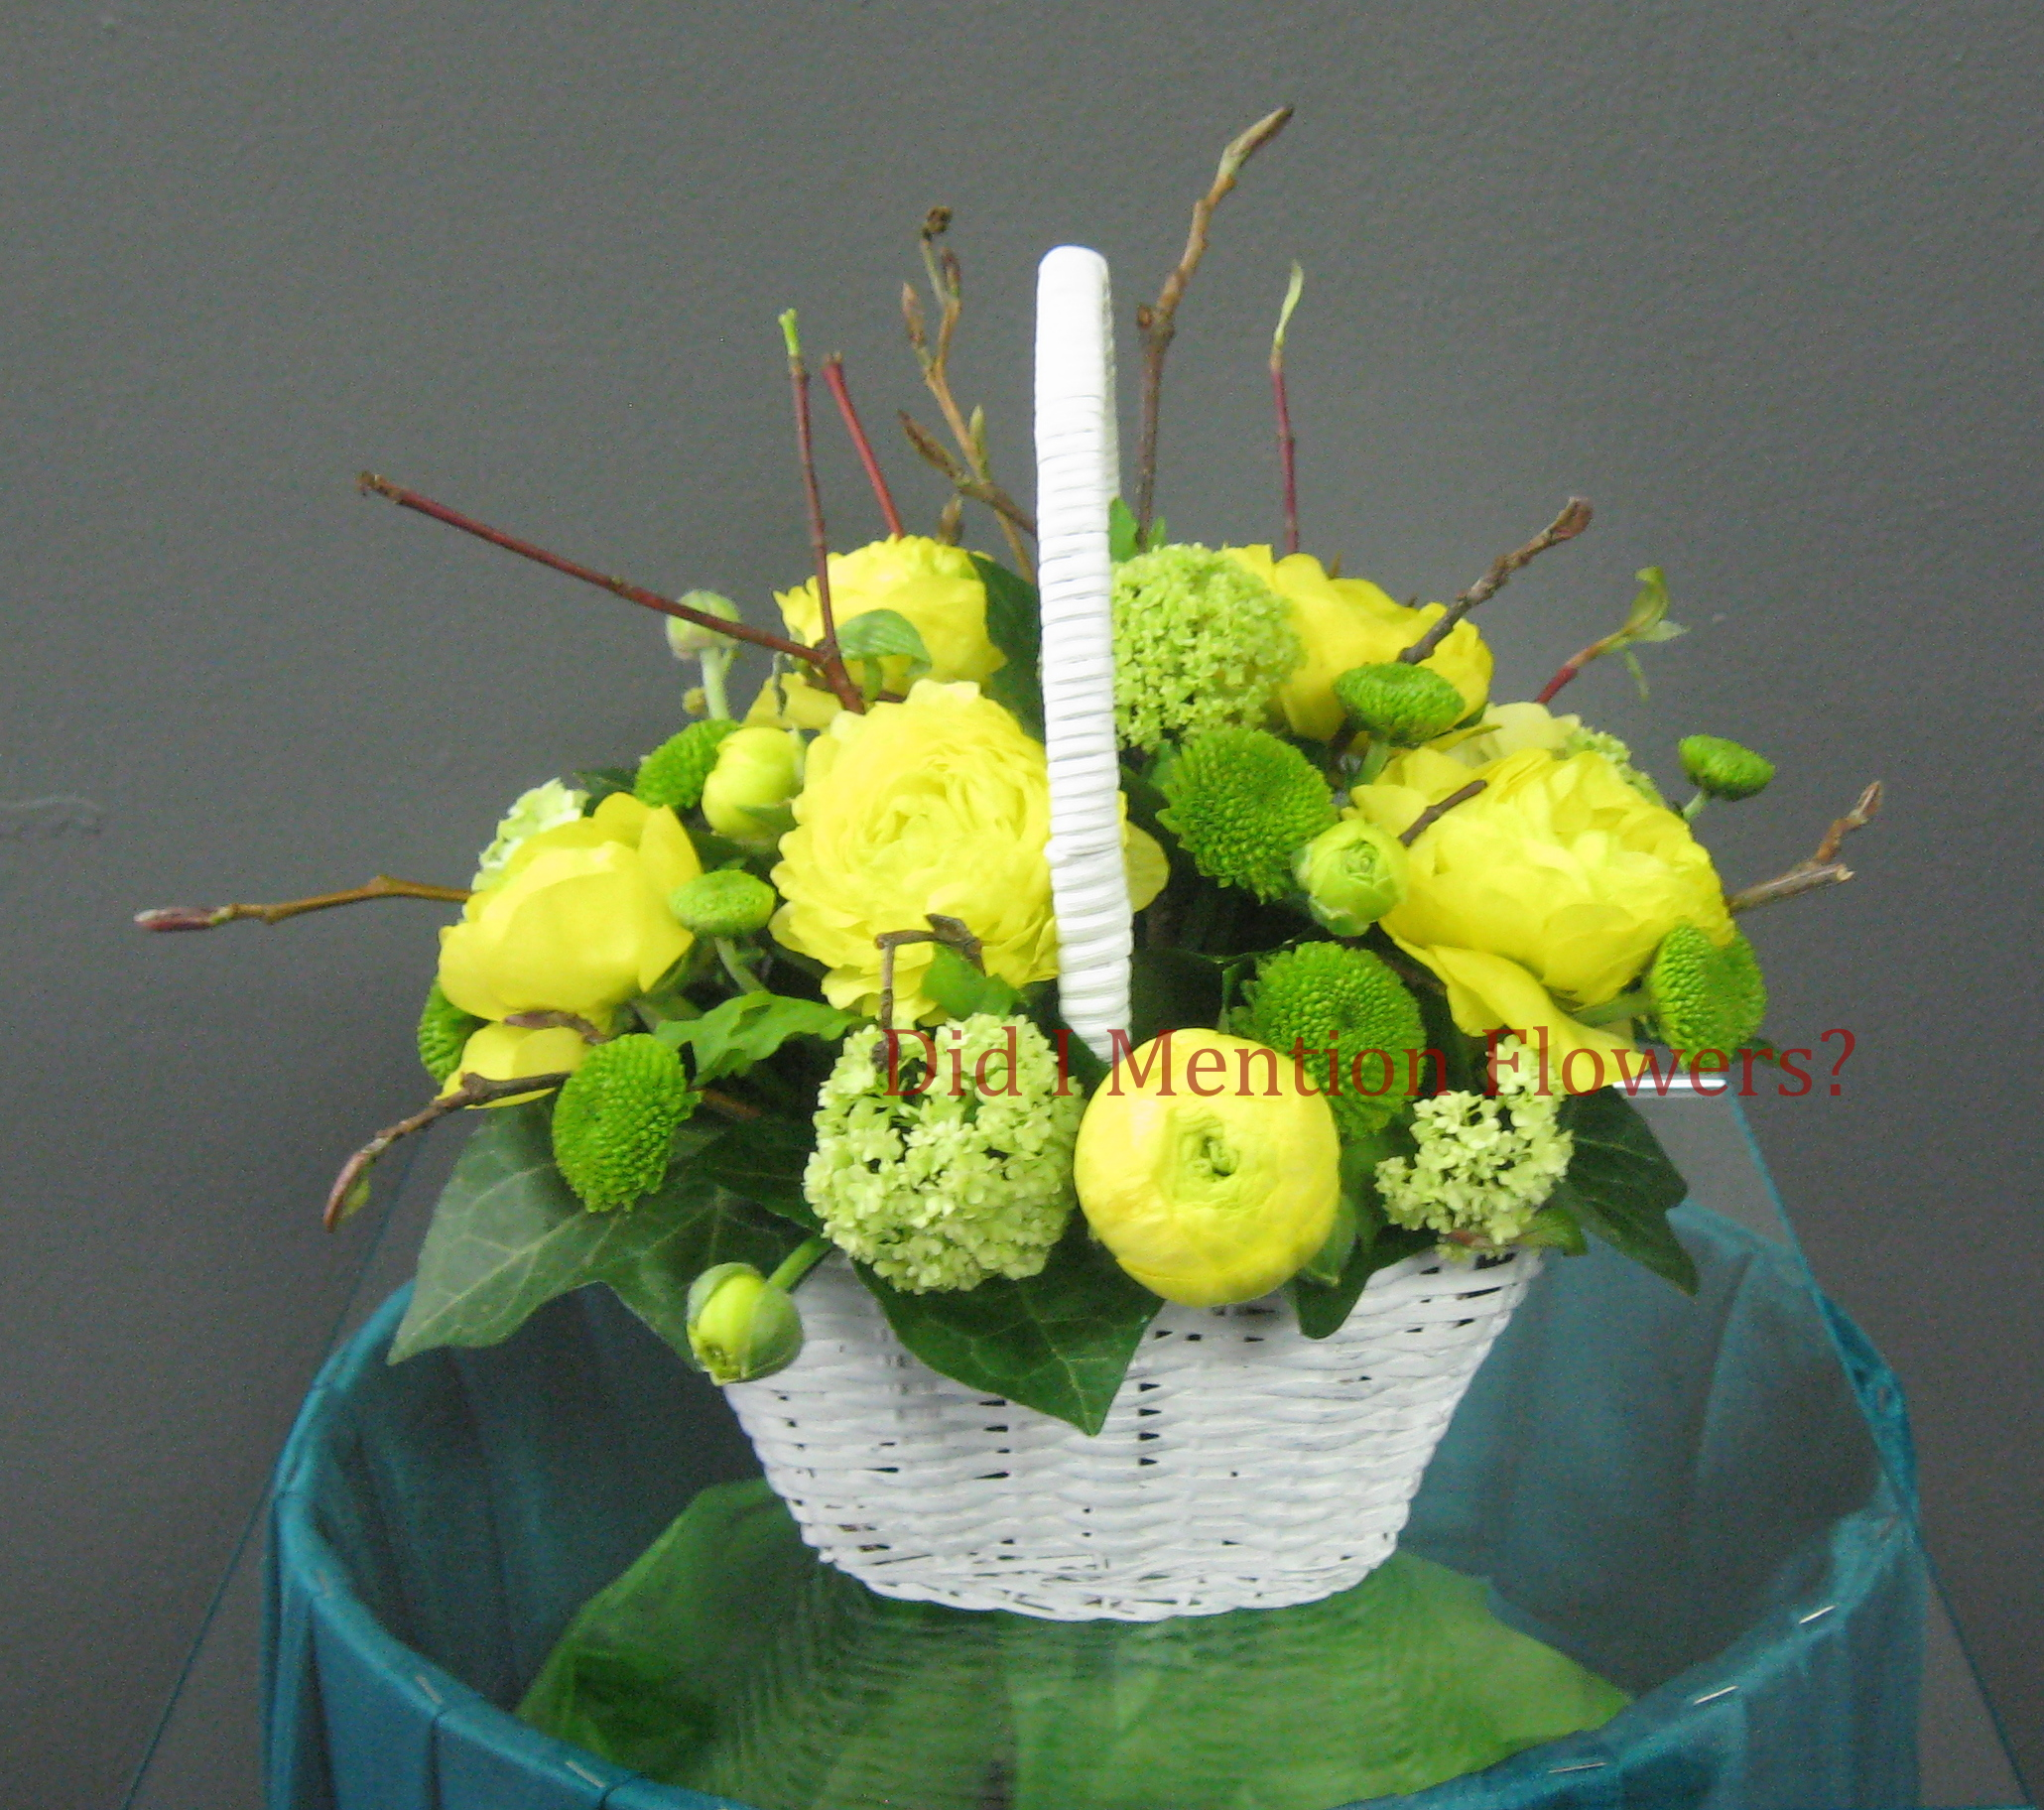 6 - Basket Arrangement